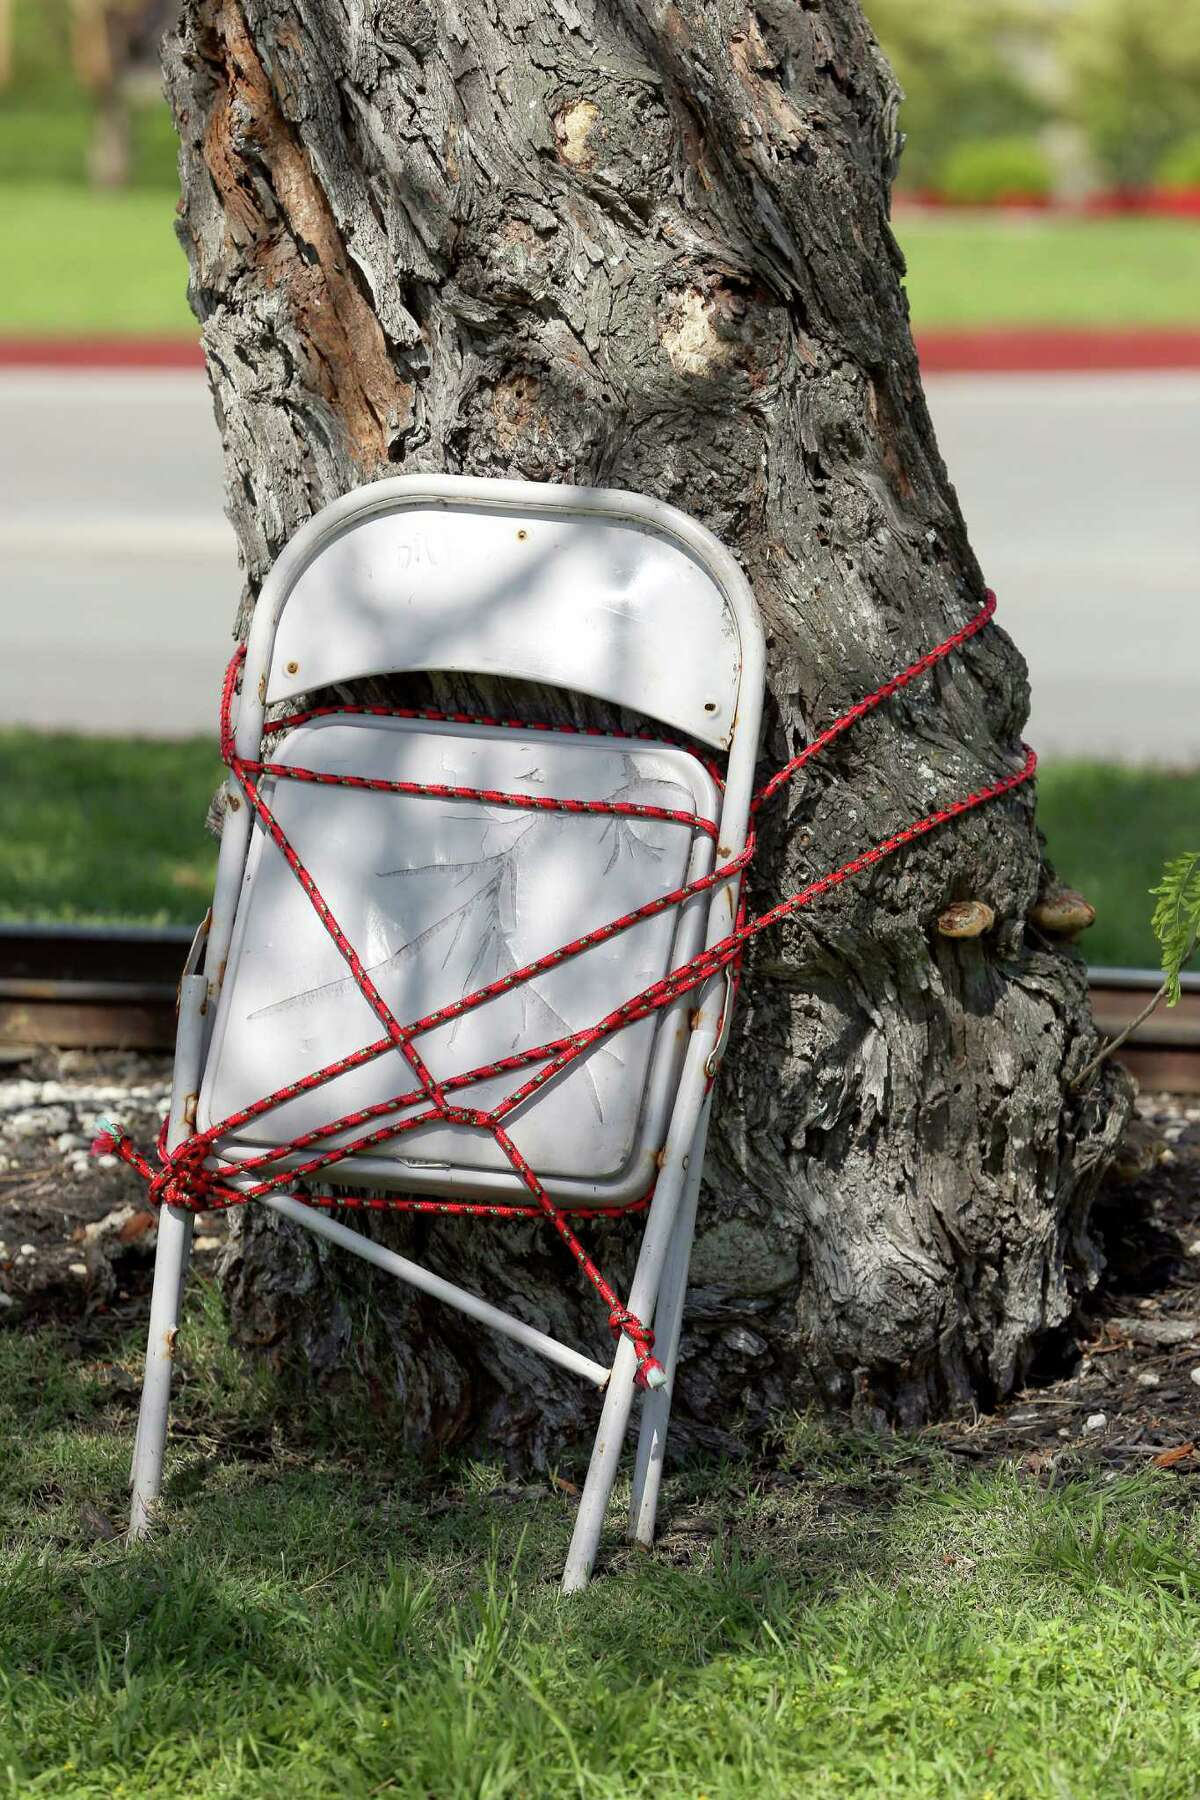 A chair marks a spot Thursday, March 24, 2016 in Brackenridge Park where someone is reserving space for their Easter festivities. Chairs of all kinds begin appearing chained, roped, and simply leaning on just about every possible object in the park as much as a week before Easter as families try to reserve good spots in the park.